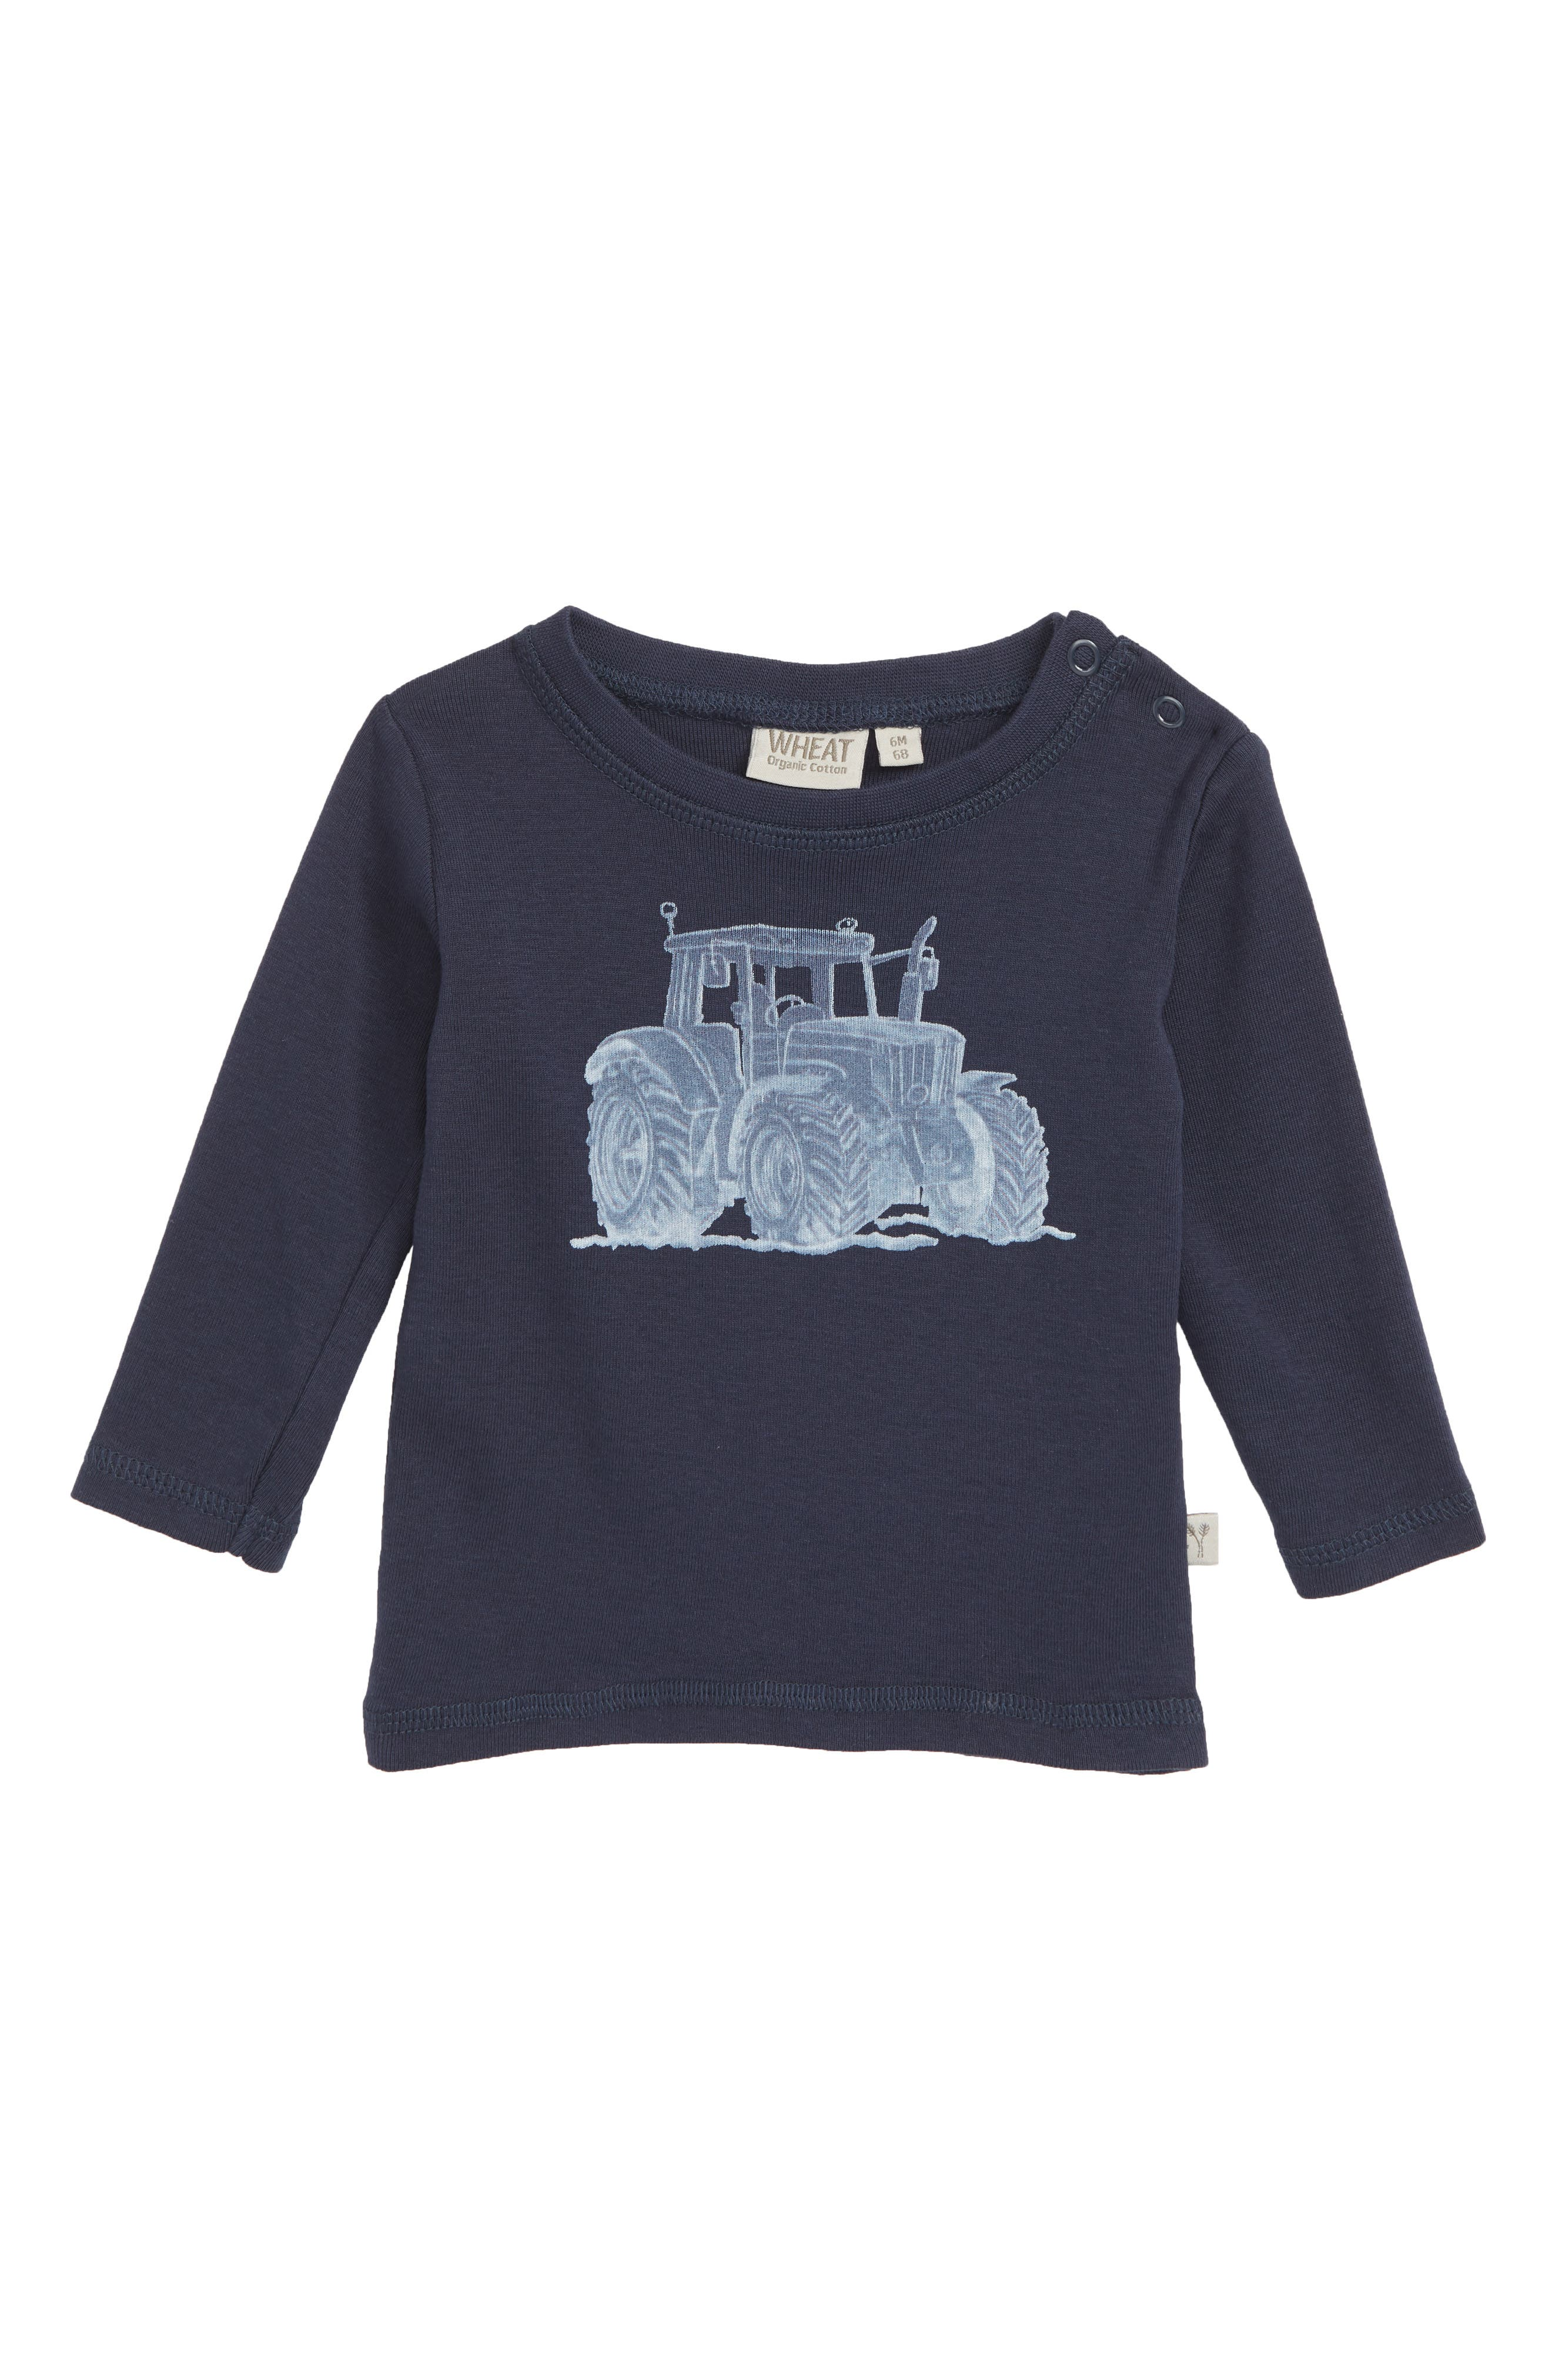 WHEAT Tractor Organic Cotton T-Shirt, Main, color, NAVY